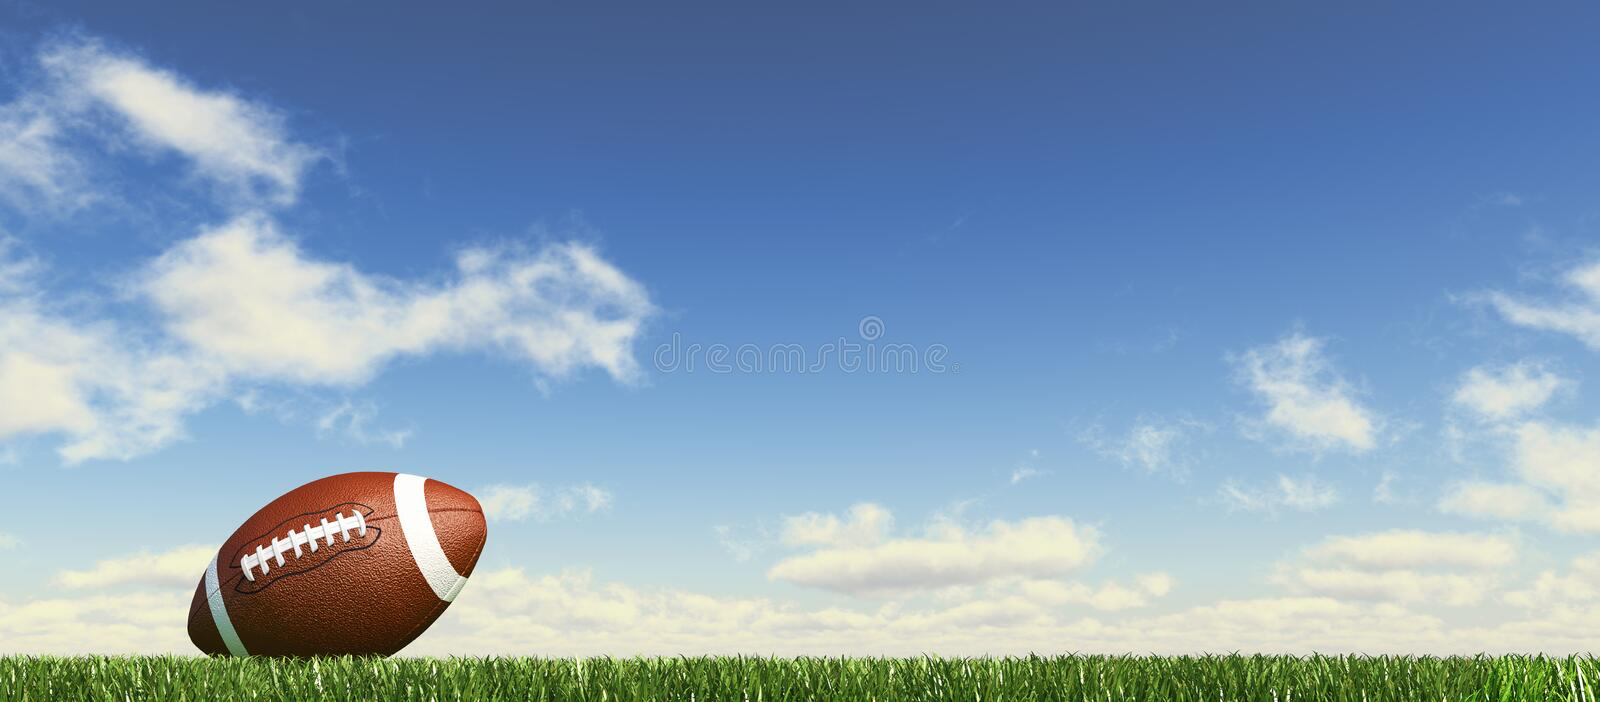 American football, on the grass, with fluffy clouds at the background. vector illustration